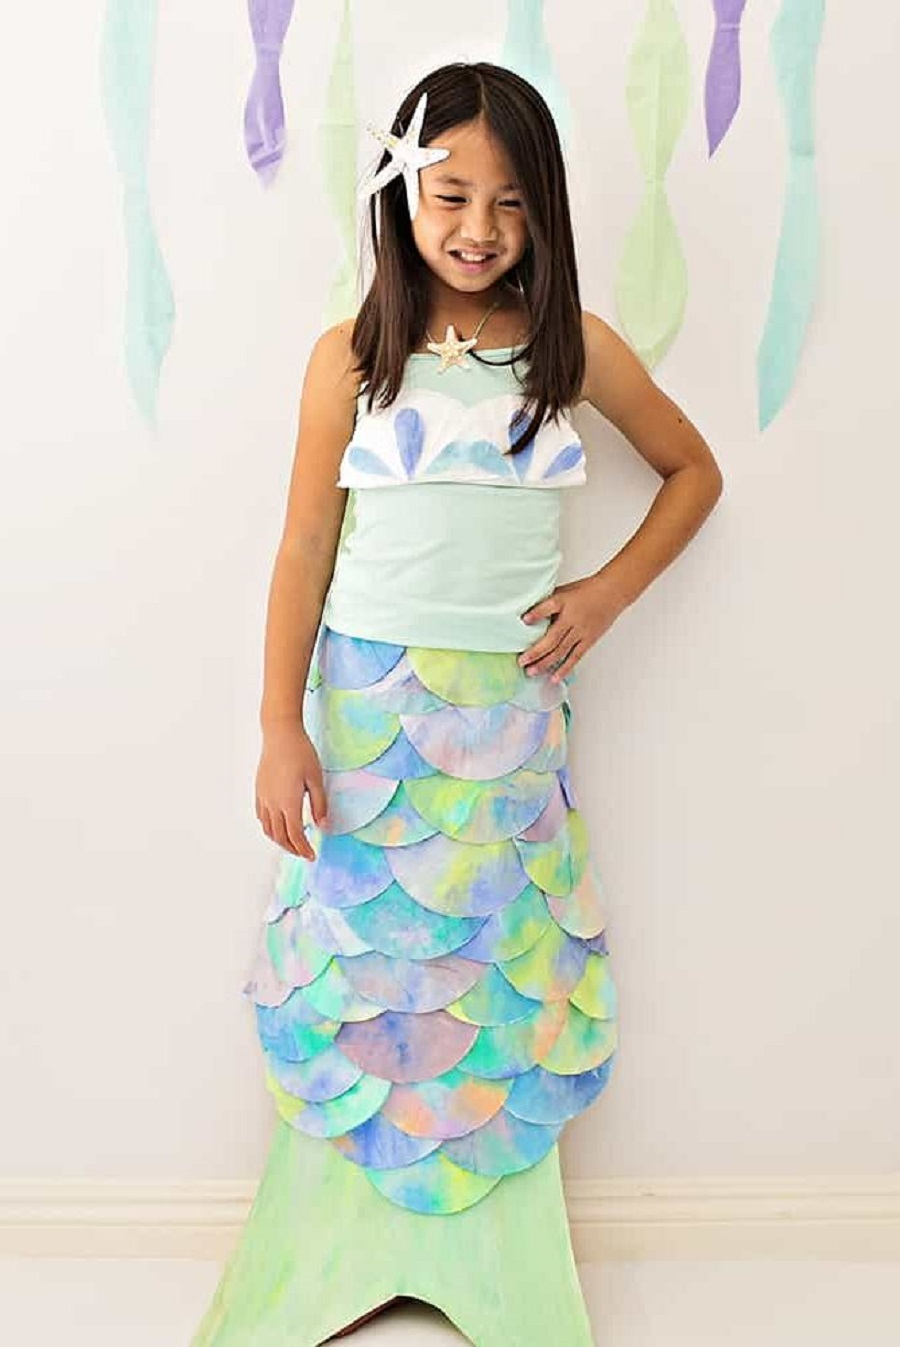 Diy coffee filter mermaid costume DIY Mermaid Costume Ideas For Adults And Kids You Can Make This Halloween